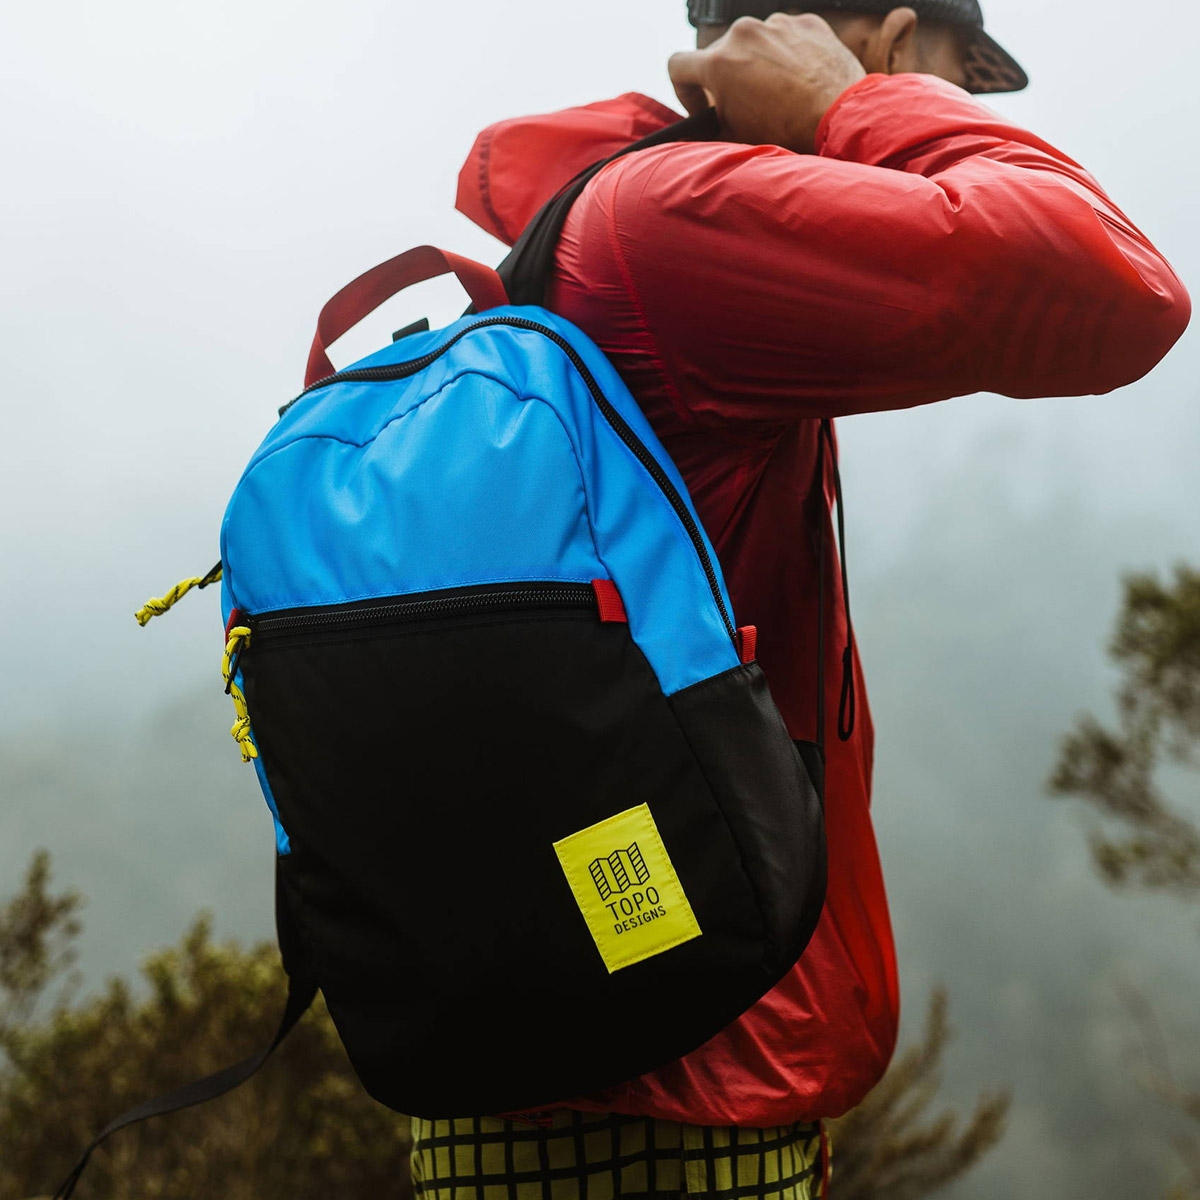 Topo Designs Light Pack, lightweight carry-all bag, also perfect pack for hiking